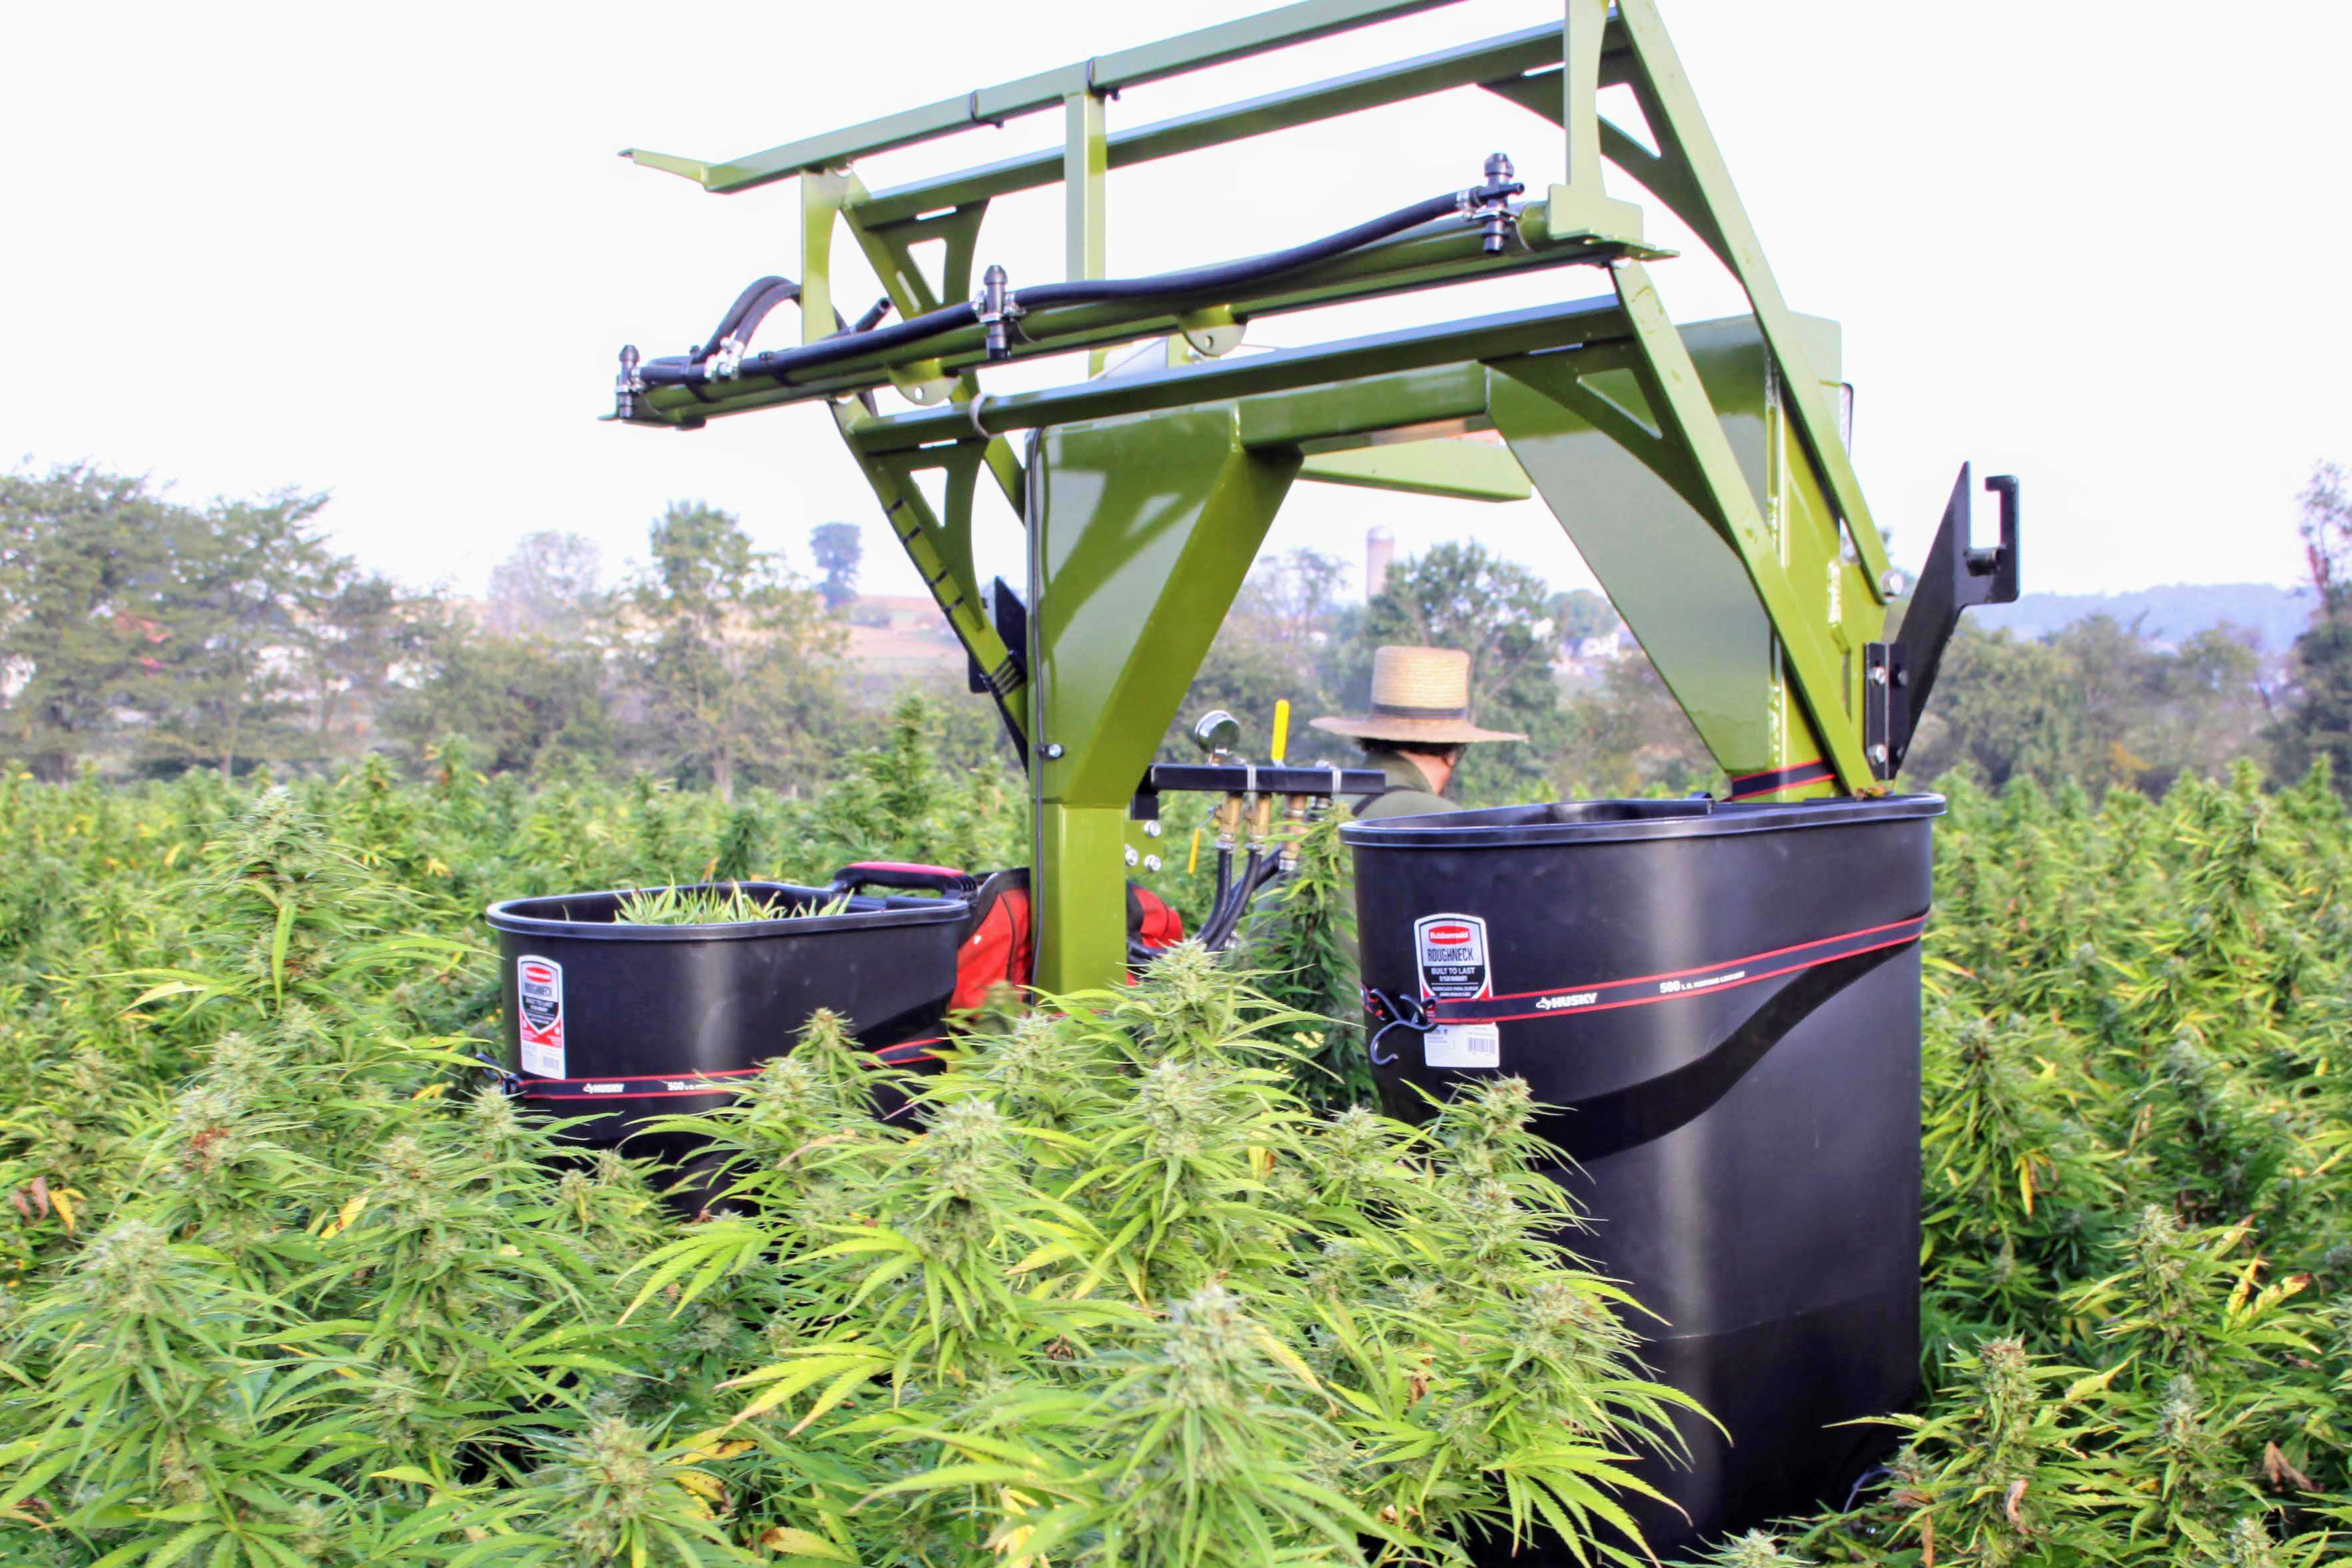 harvesting hemp with SP50 Self-propelled sprayer from Iva Mfg